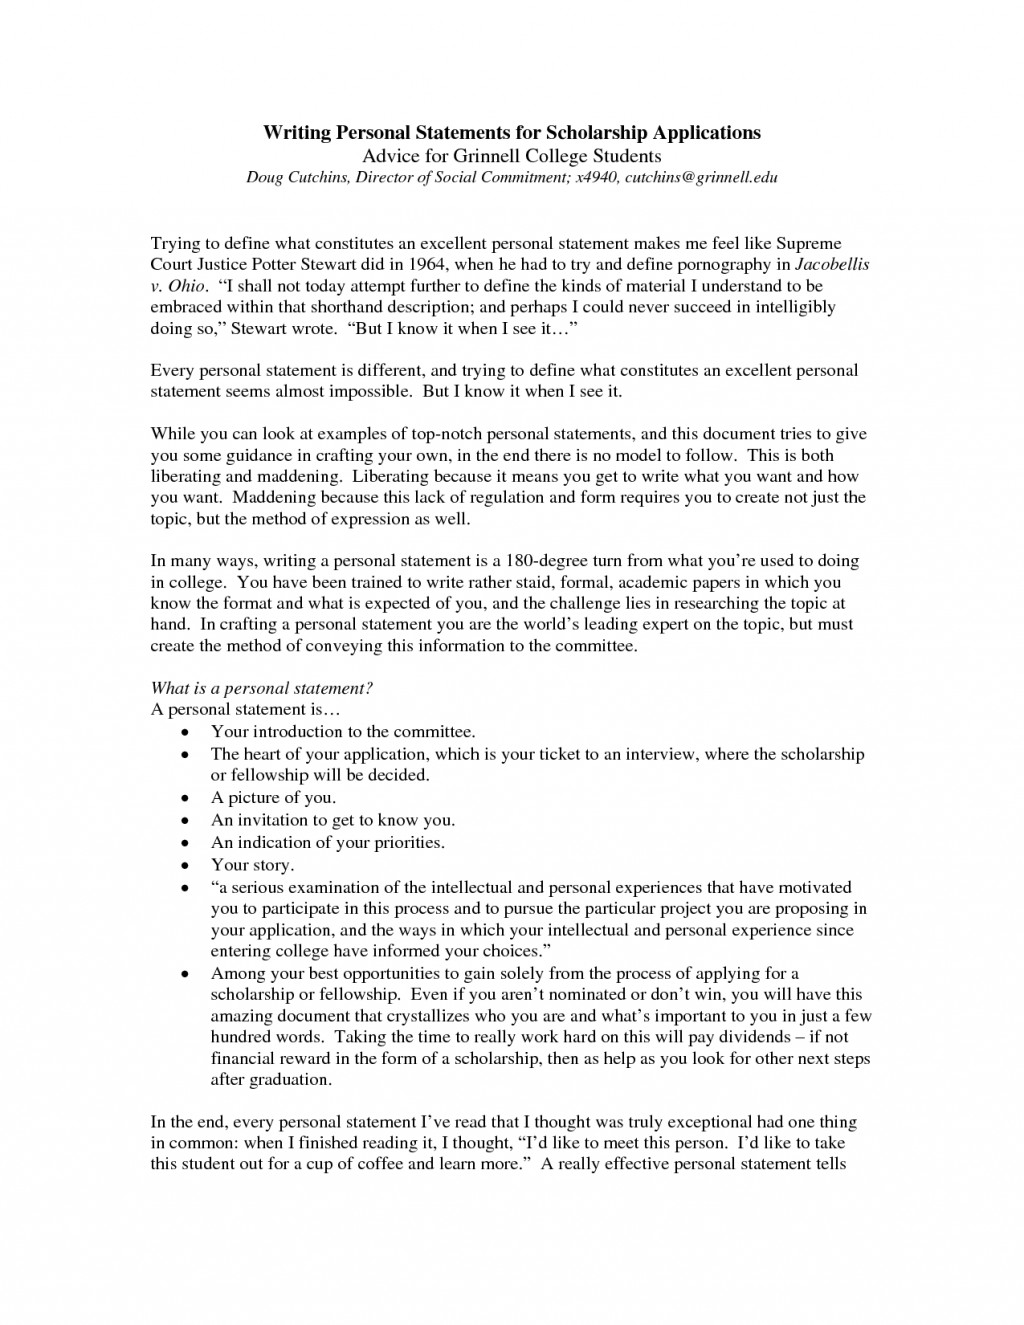 004 College Personal Statement Essays Marvelous Essay Examples Large